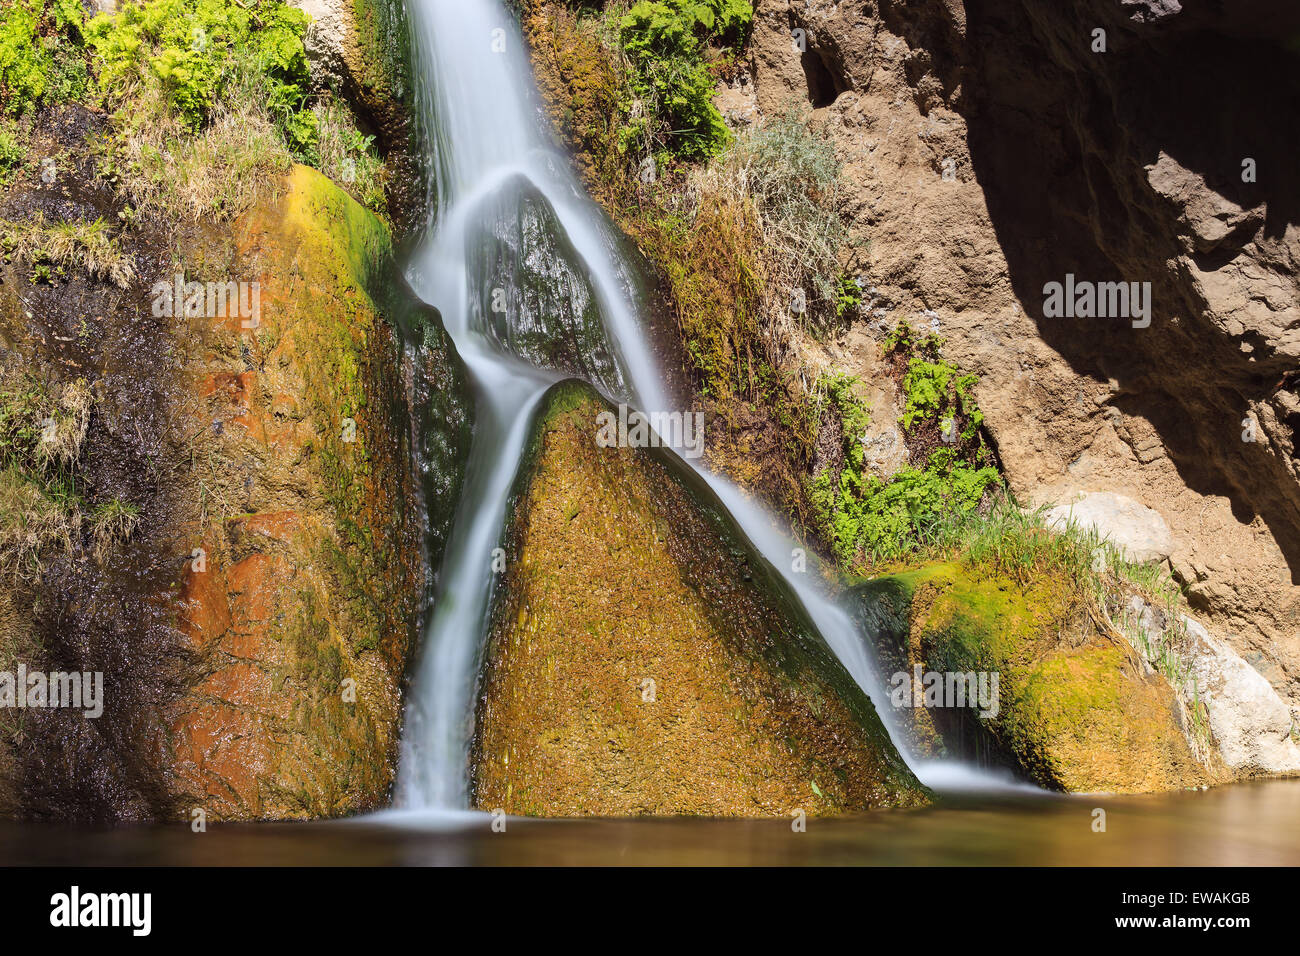 Darwin Falls in Death Valley National Park in California, USA - Stock Image